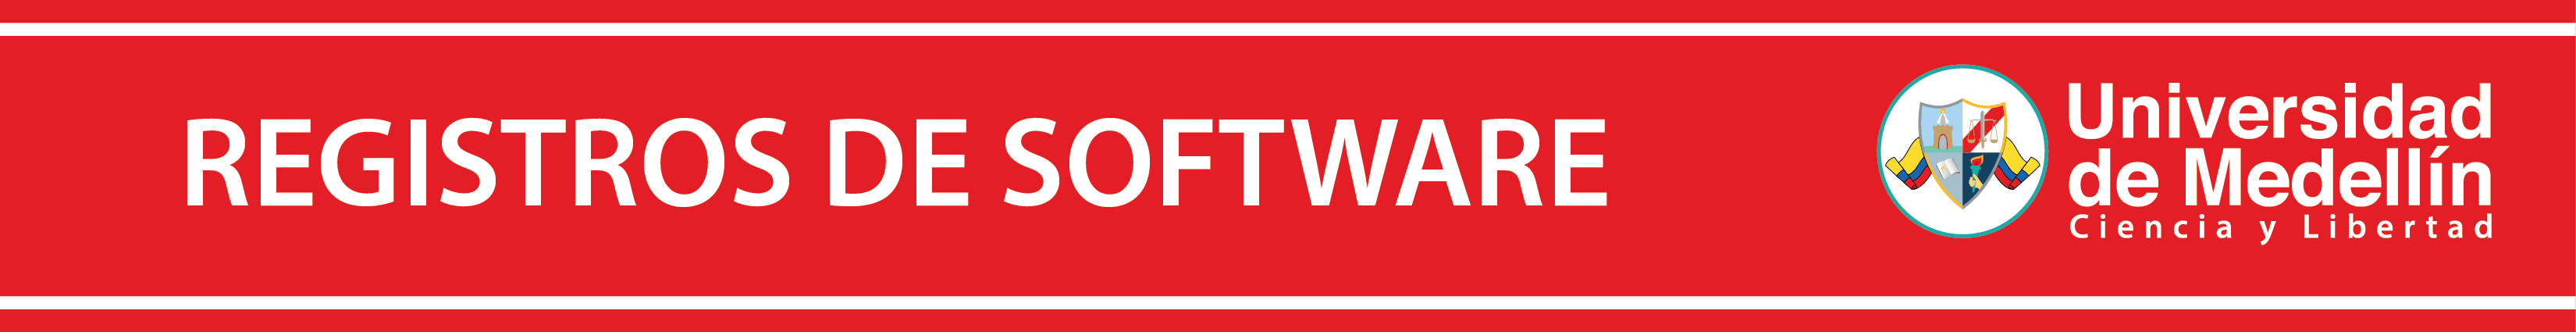 REGISTROS DE SOFTWARE1